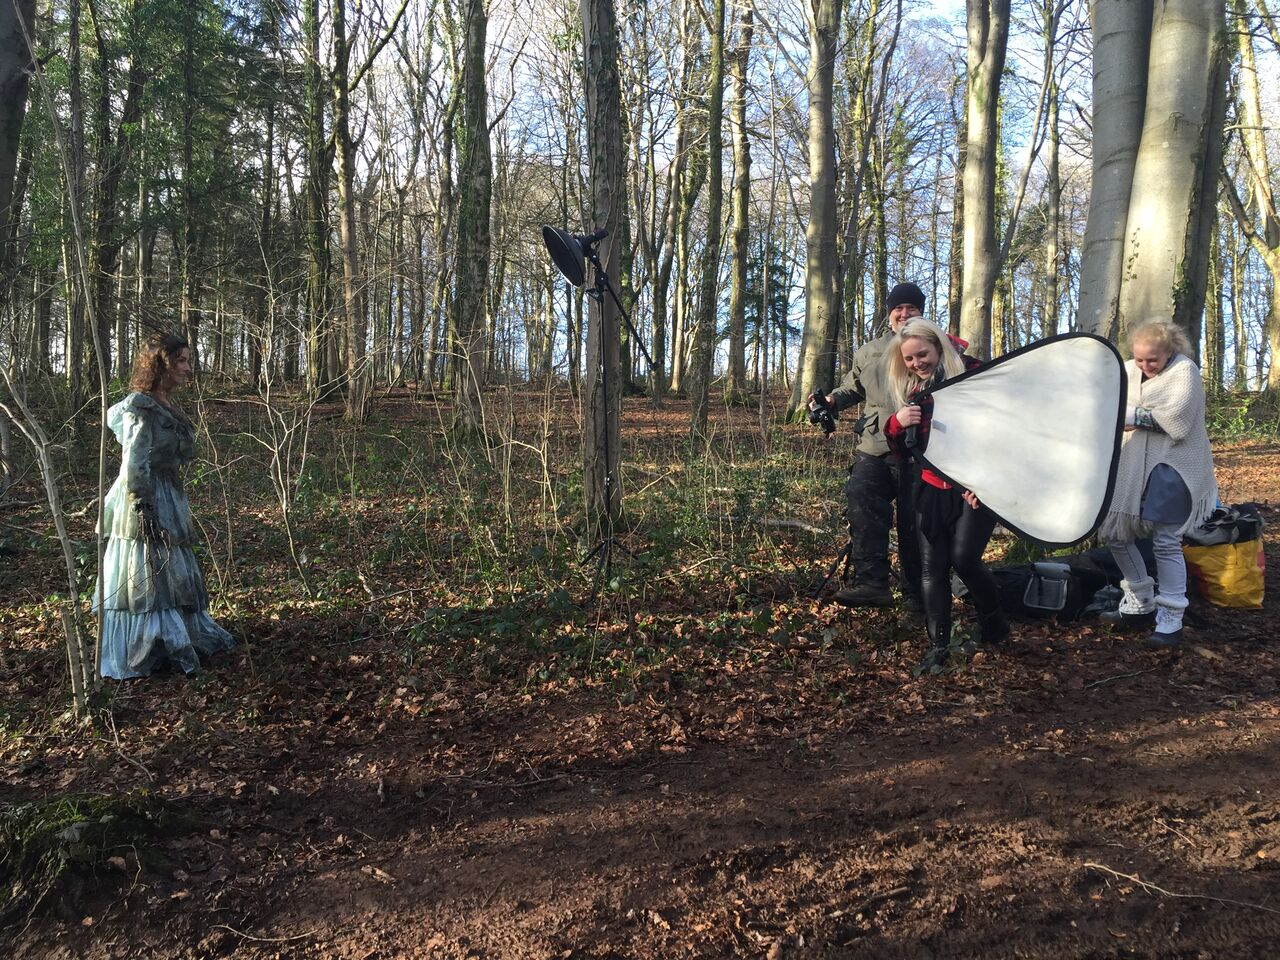 In Parenthesis photoshoot behind the scenes with cameras